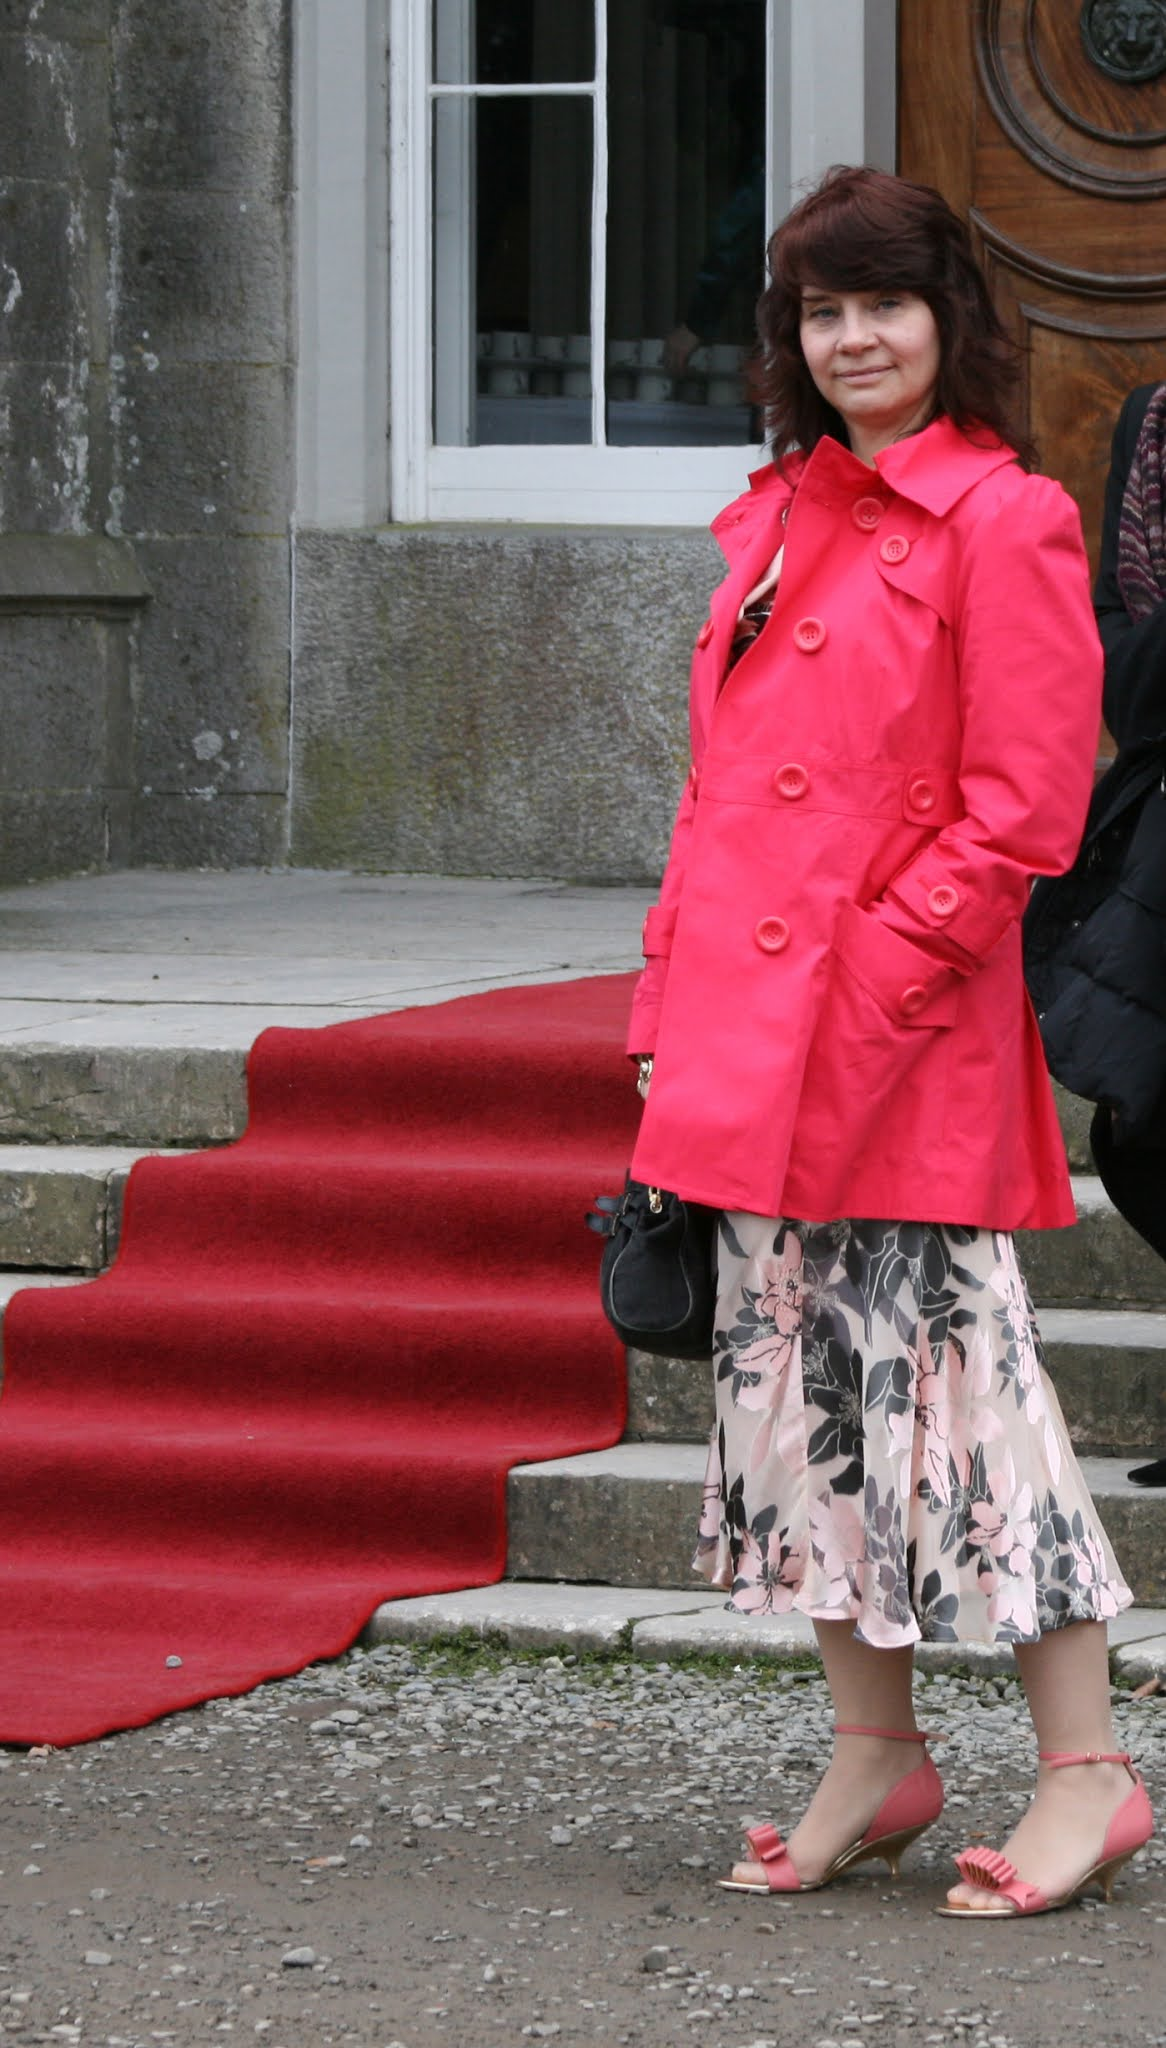 Is This Mutton blogger Gail Hanlon was not exactly dressed for a February Ireland wedding in 2009 in sandals and no tights